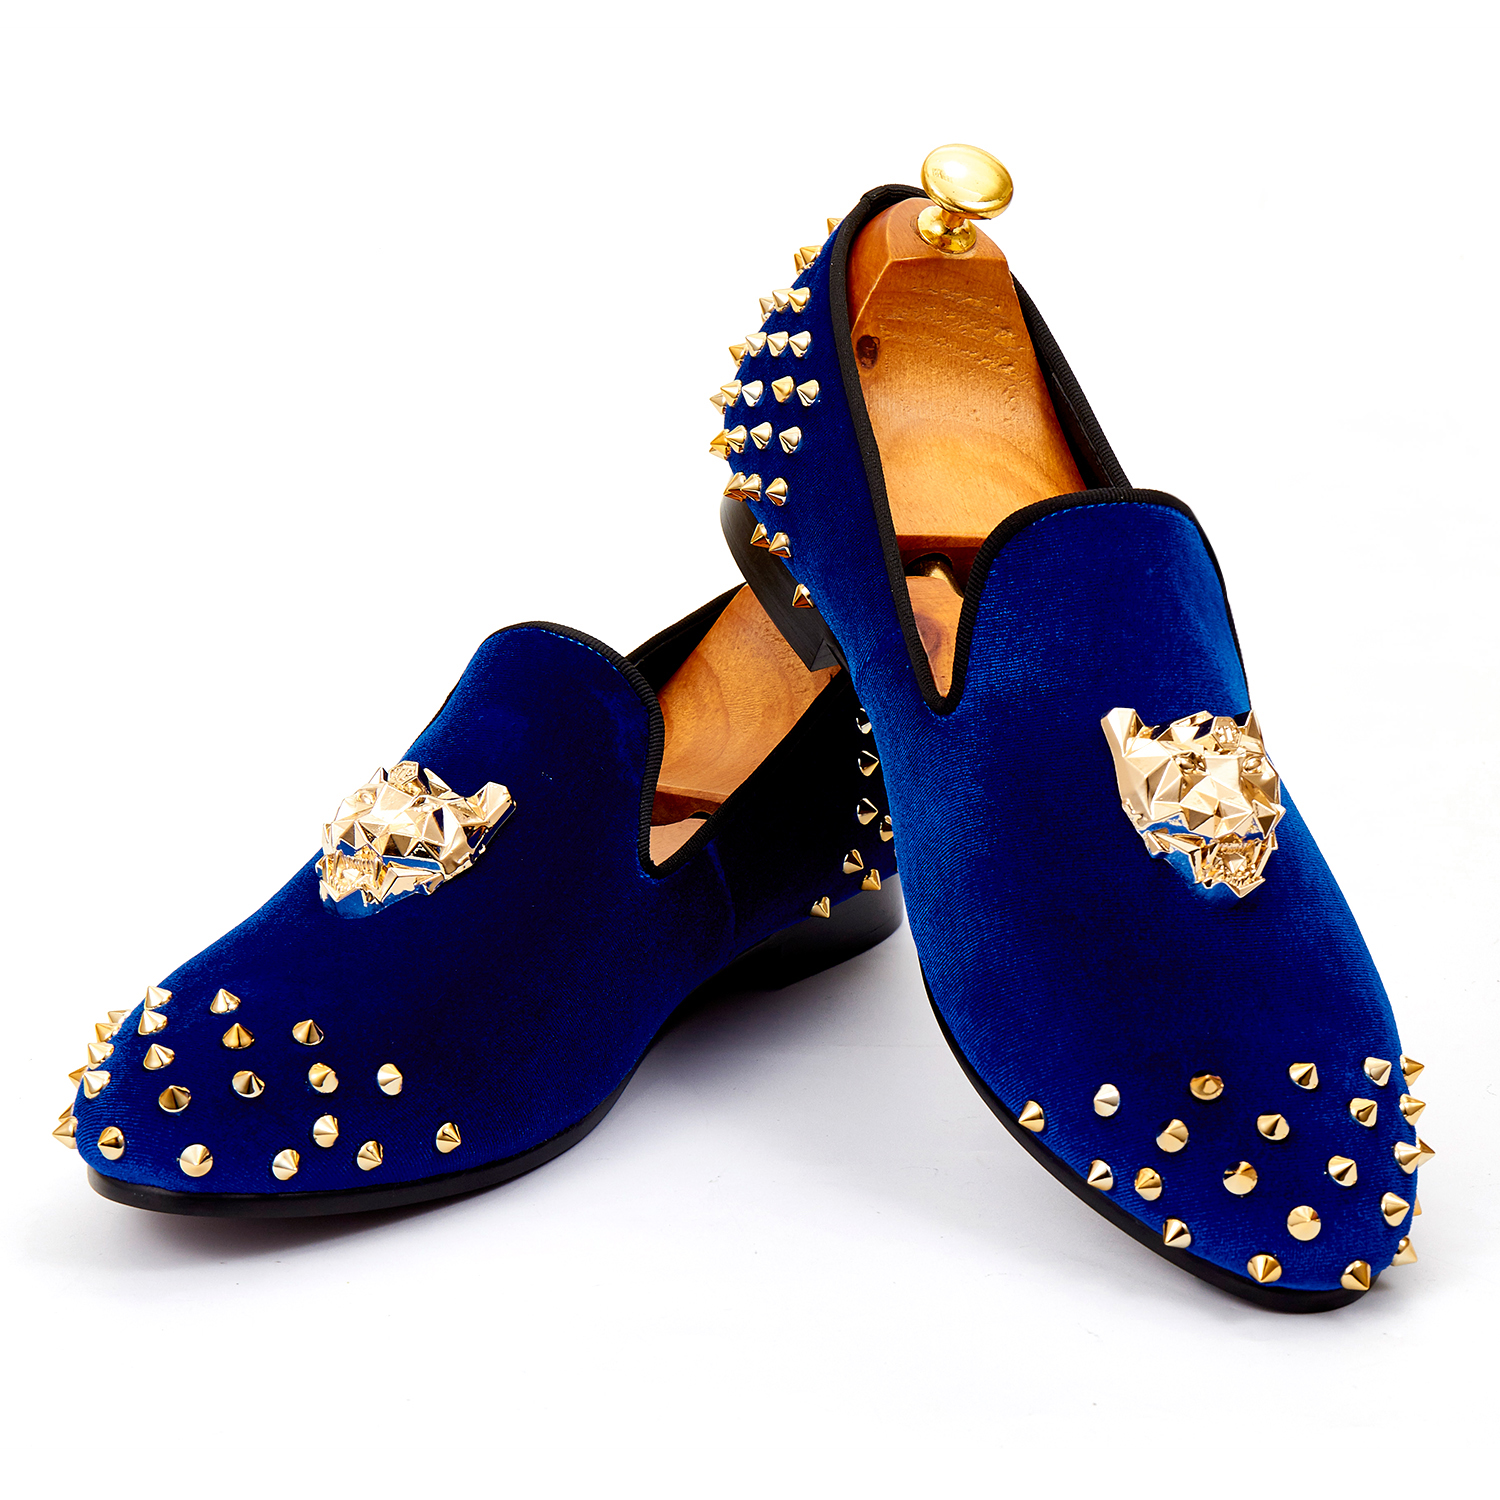 Harpelunde Mens Chaussures De Mariage Pointes Bleu Velours Mocassins Animal Boucle Chaussures Plates Taille 7-14